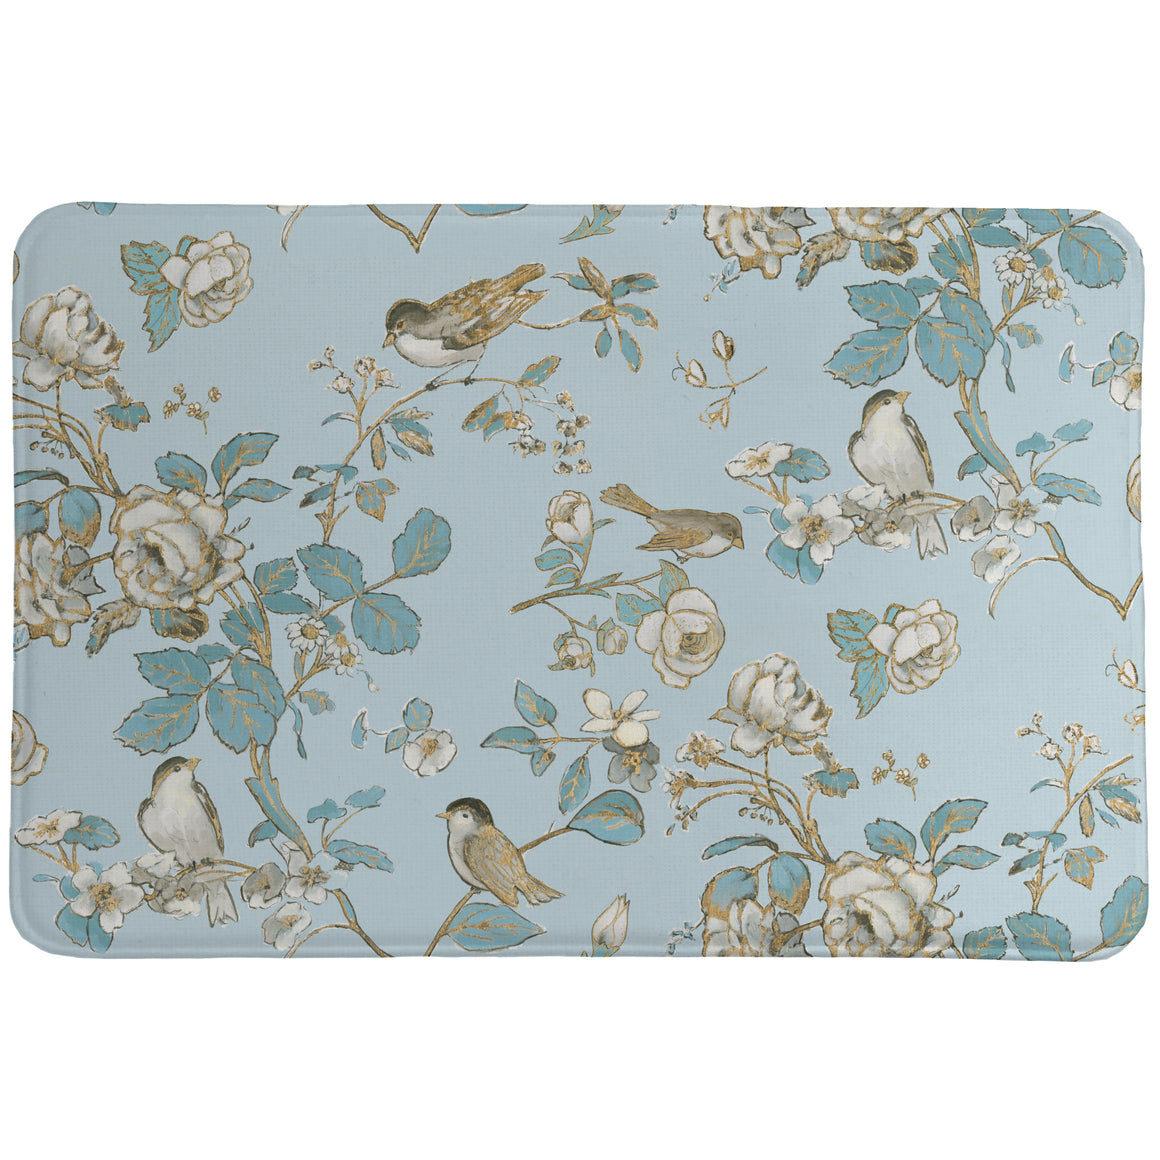 Toile Birds Foam Rug